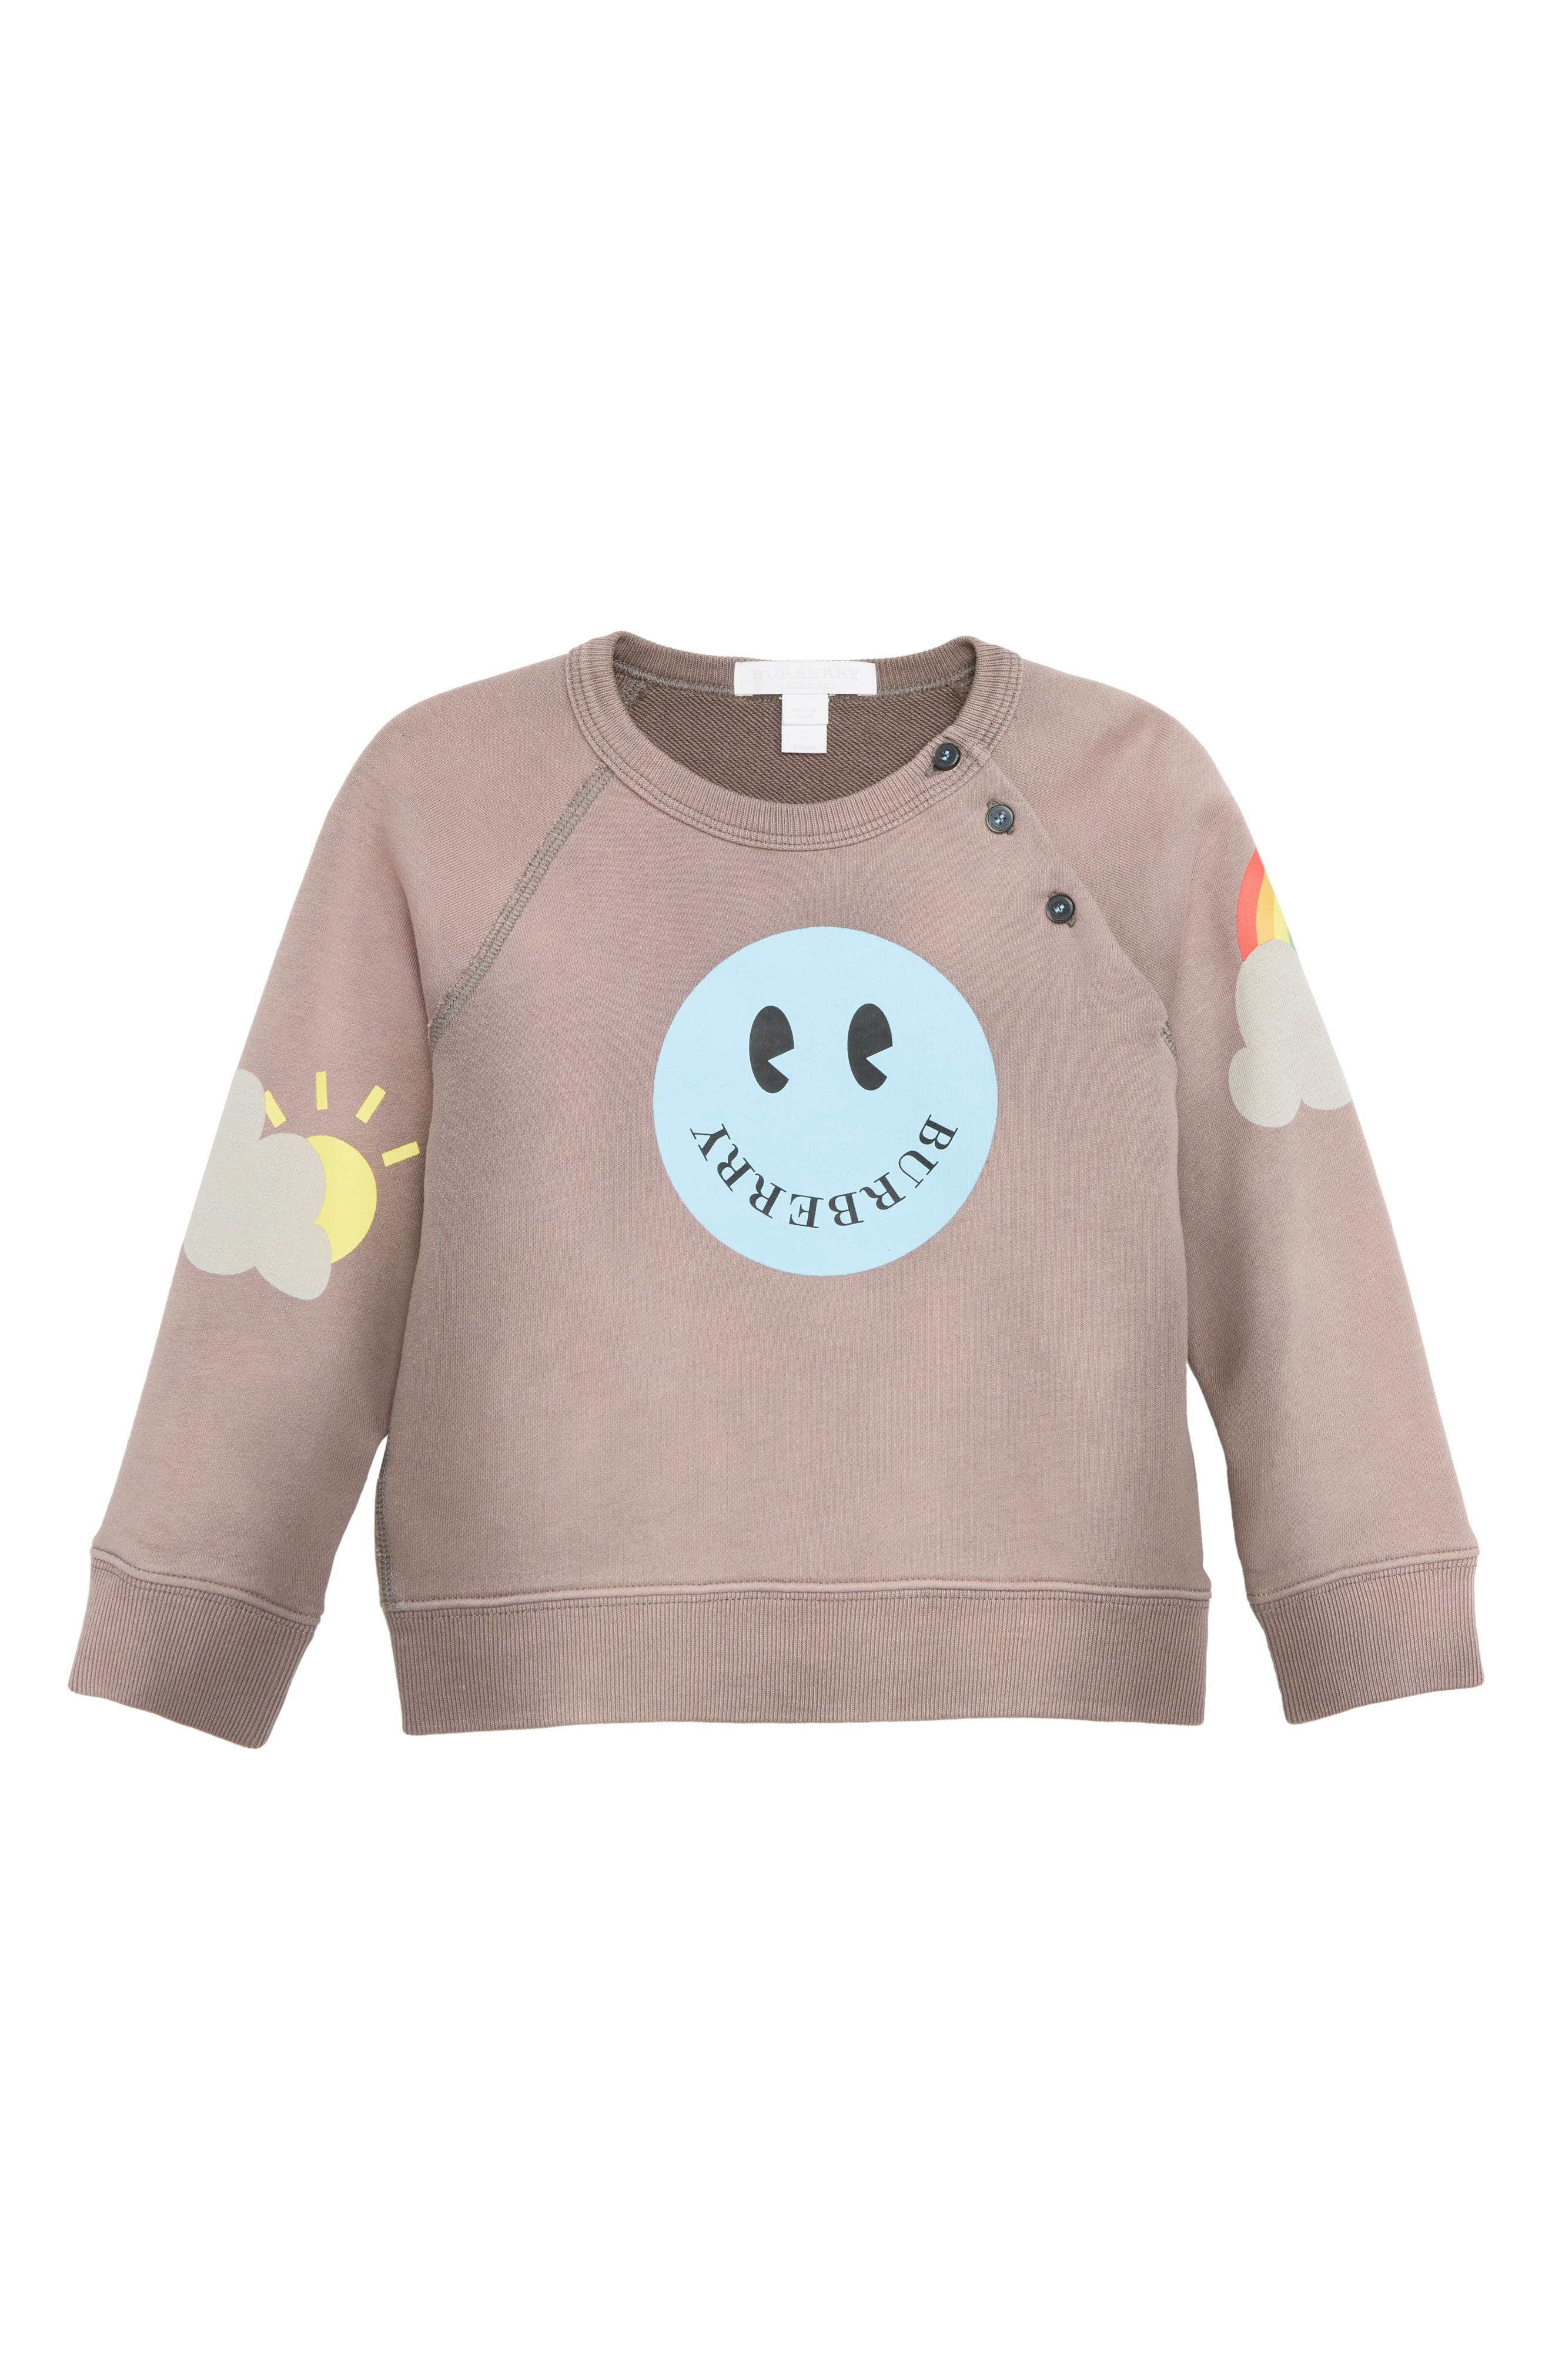 Smiley Face Sweatshirt,                         Main,                         color, MAUVE